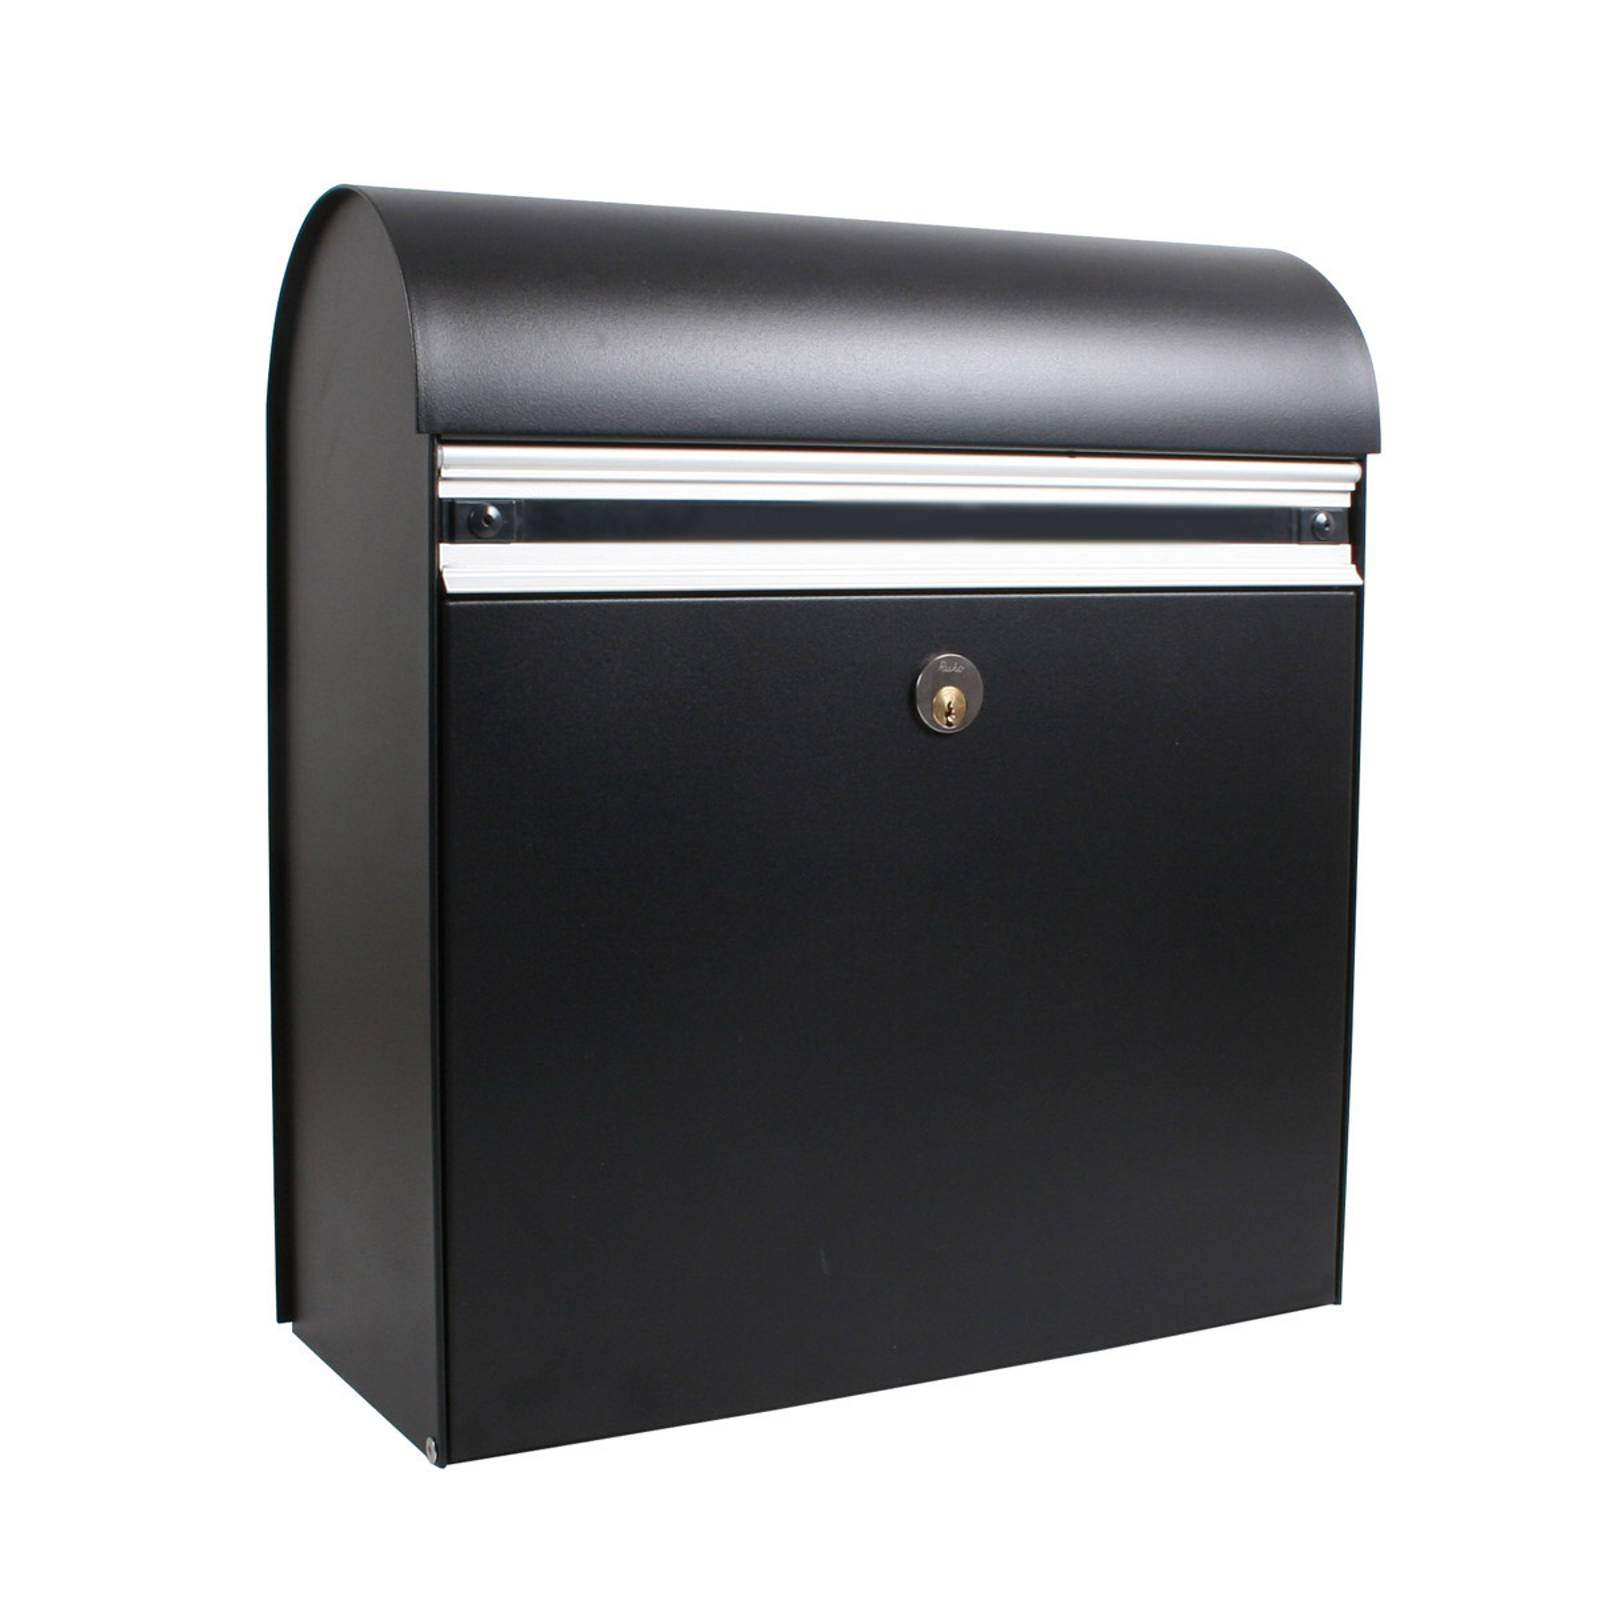 Robust letterbox KS200, black from Juliana